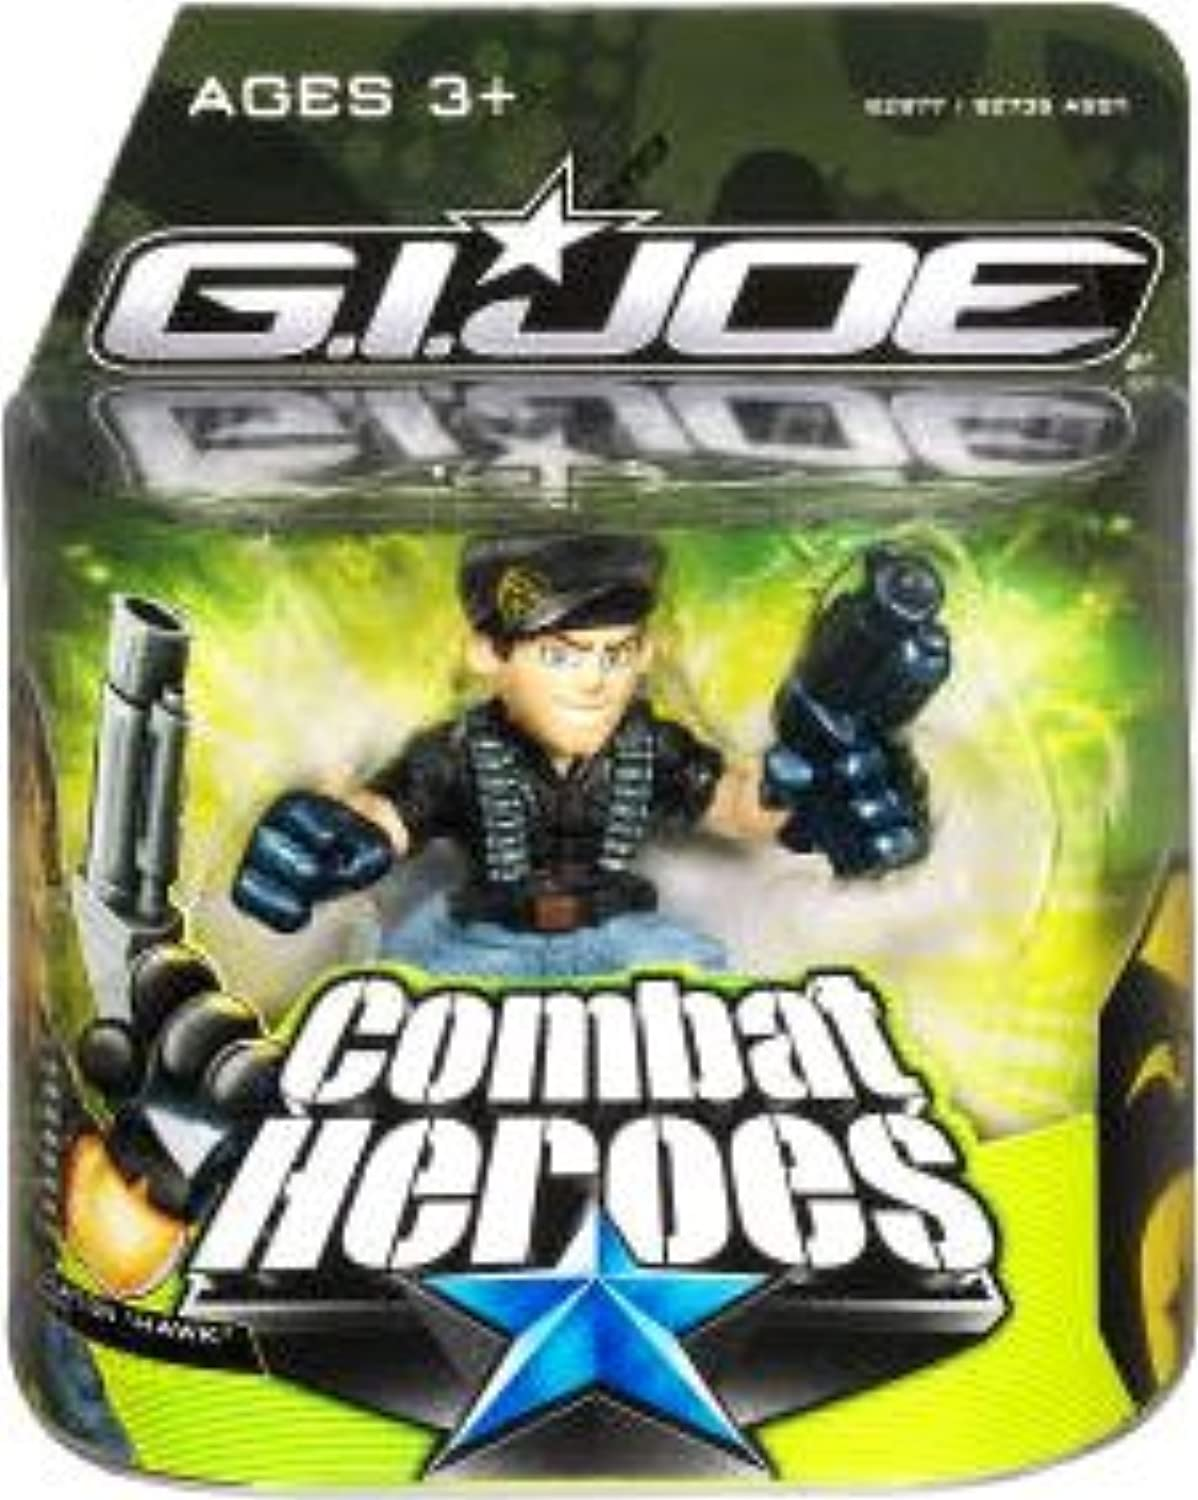 G.I. Joe The Rise of Cobra Combat Heroes Single Pack General Clayton Hawk Abernathy